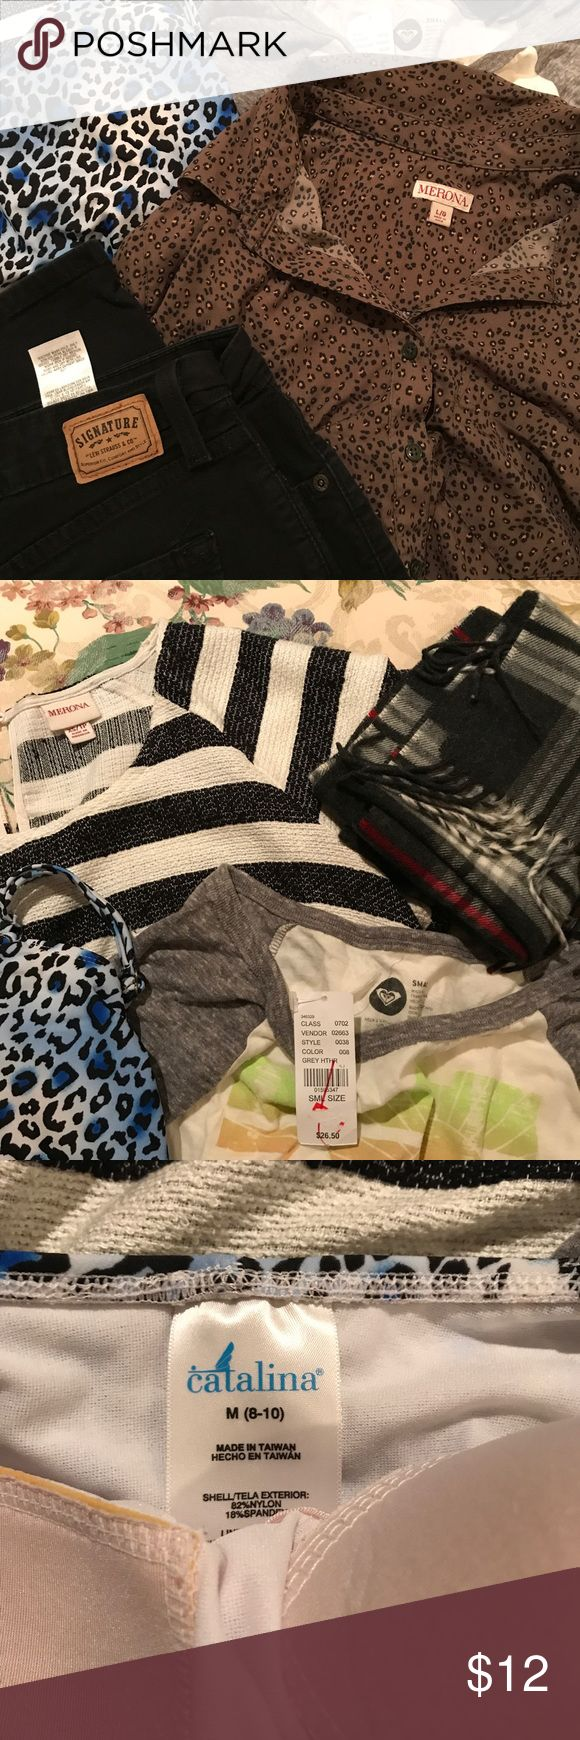 Women's Reseller Mystery Bundle 6 Pieces 6 Pieces of women's clothing. Sizes are random. Brands included are Merona, Catalina, Levi's and a Roxy top NWT. Some items may need to be cleaned, ironed or mended. All sales final.   1 Scarf 3 Tops  1 One Piece Bathing Suit 1 Jean Levi's Tops